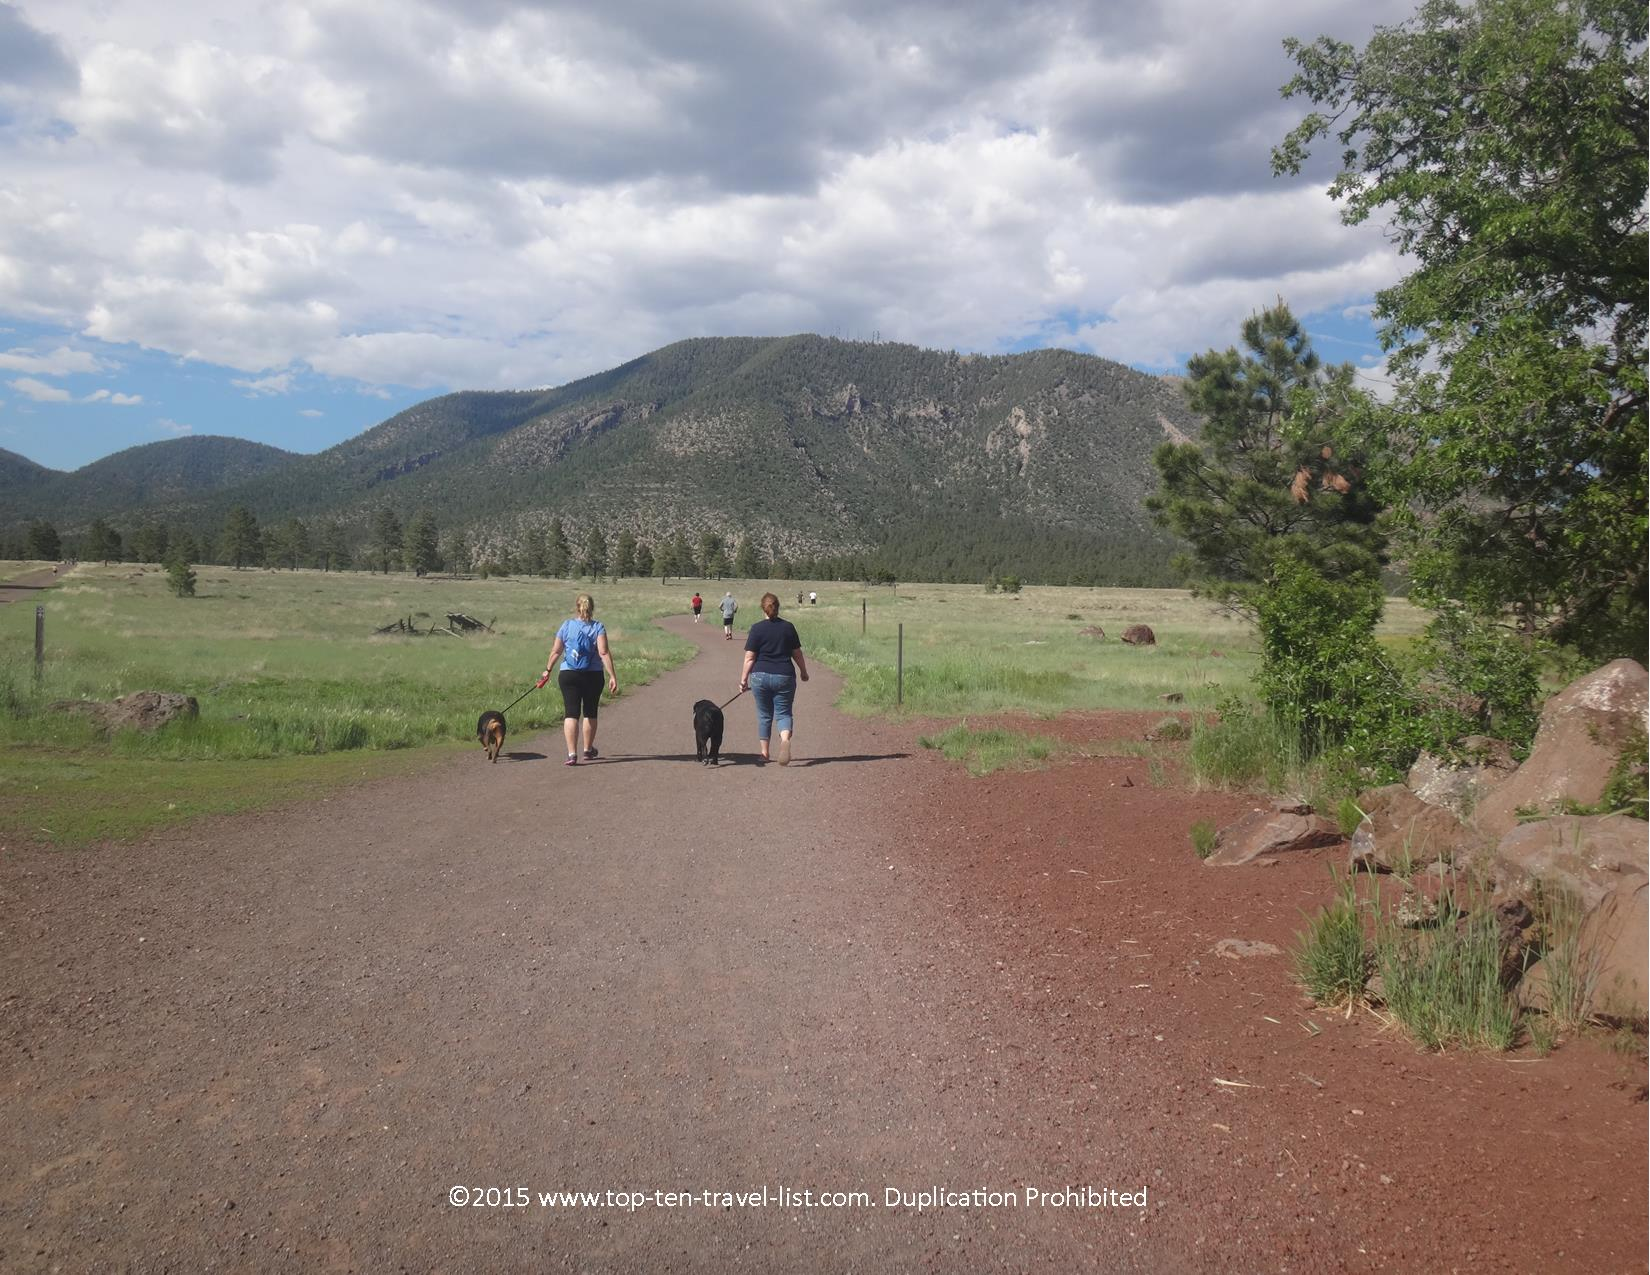 Buffalo Park is a nice easy 2 mile loop trail for everyone, featuring the best views in town of Mt. Elden and the San Francisco Peaks.